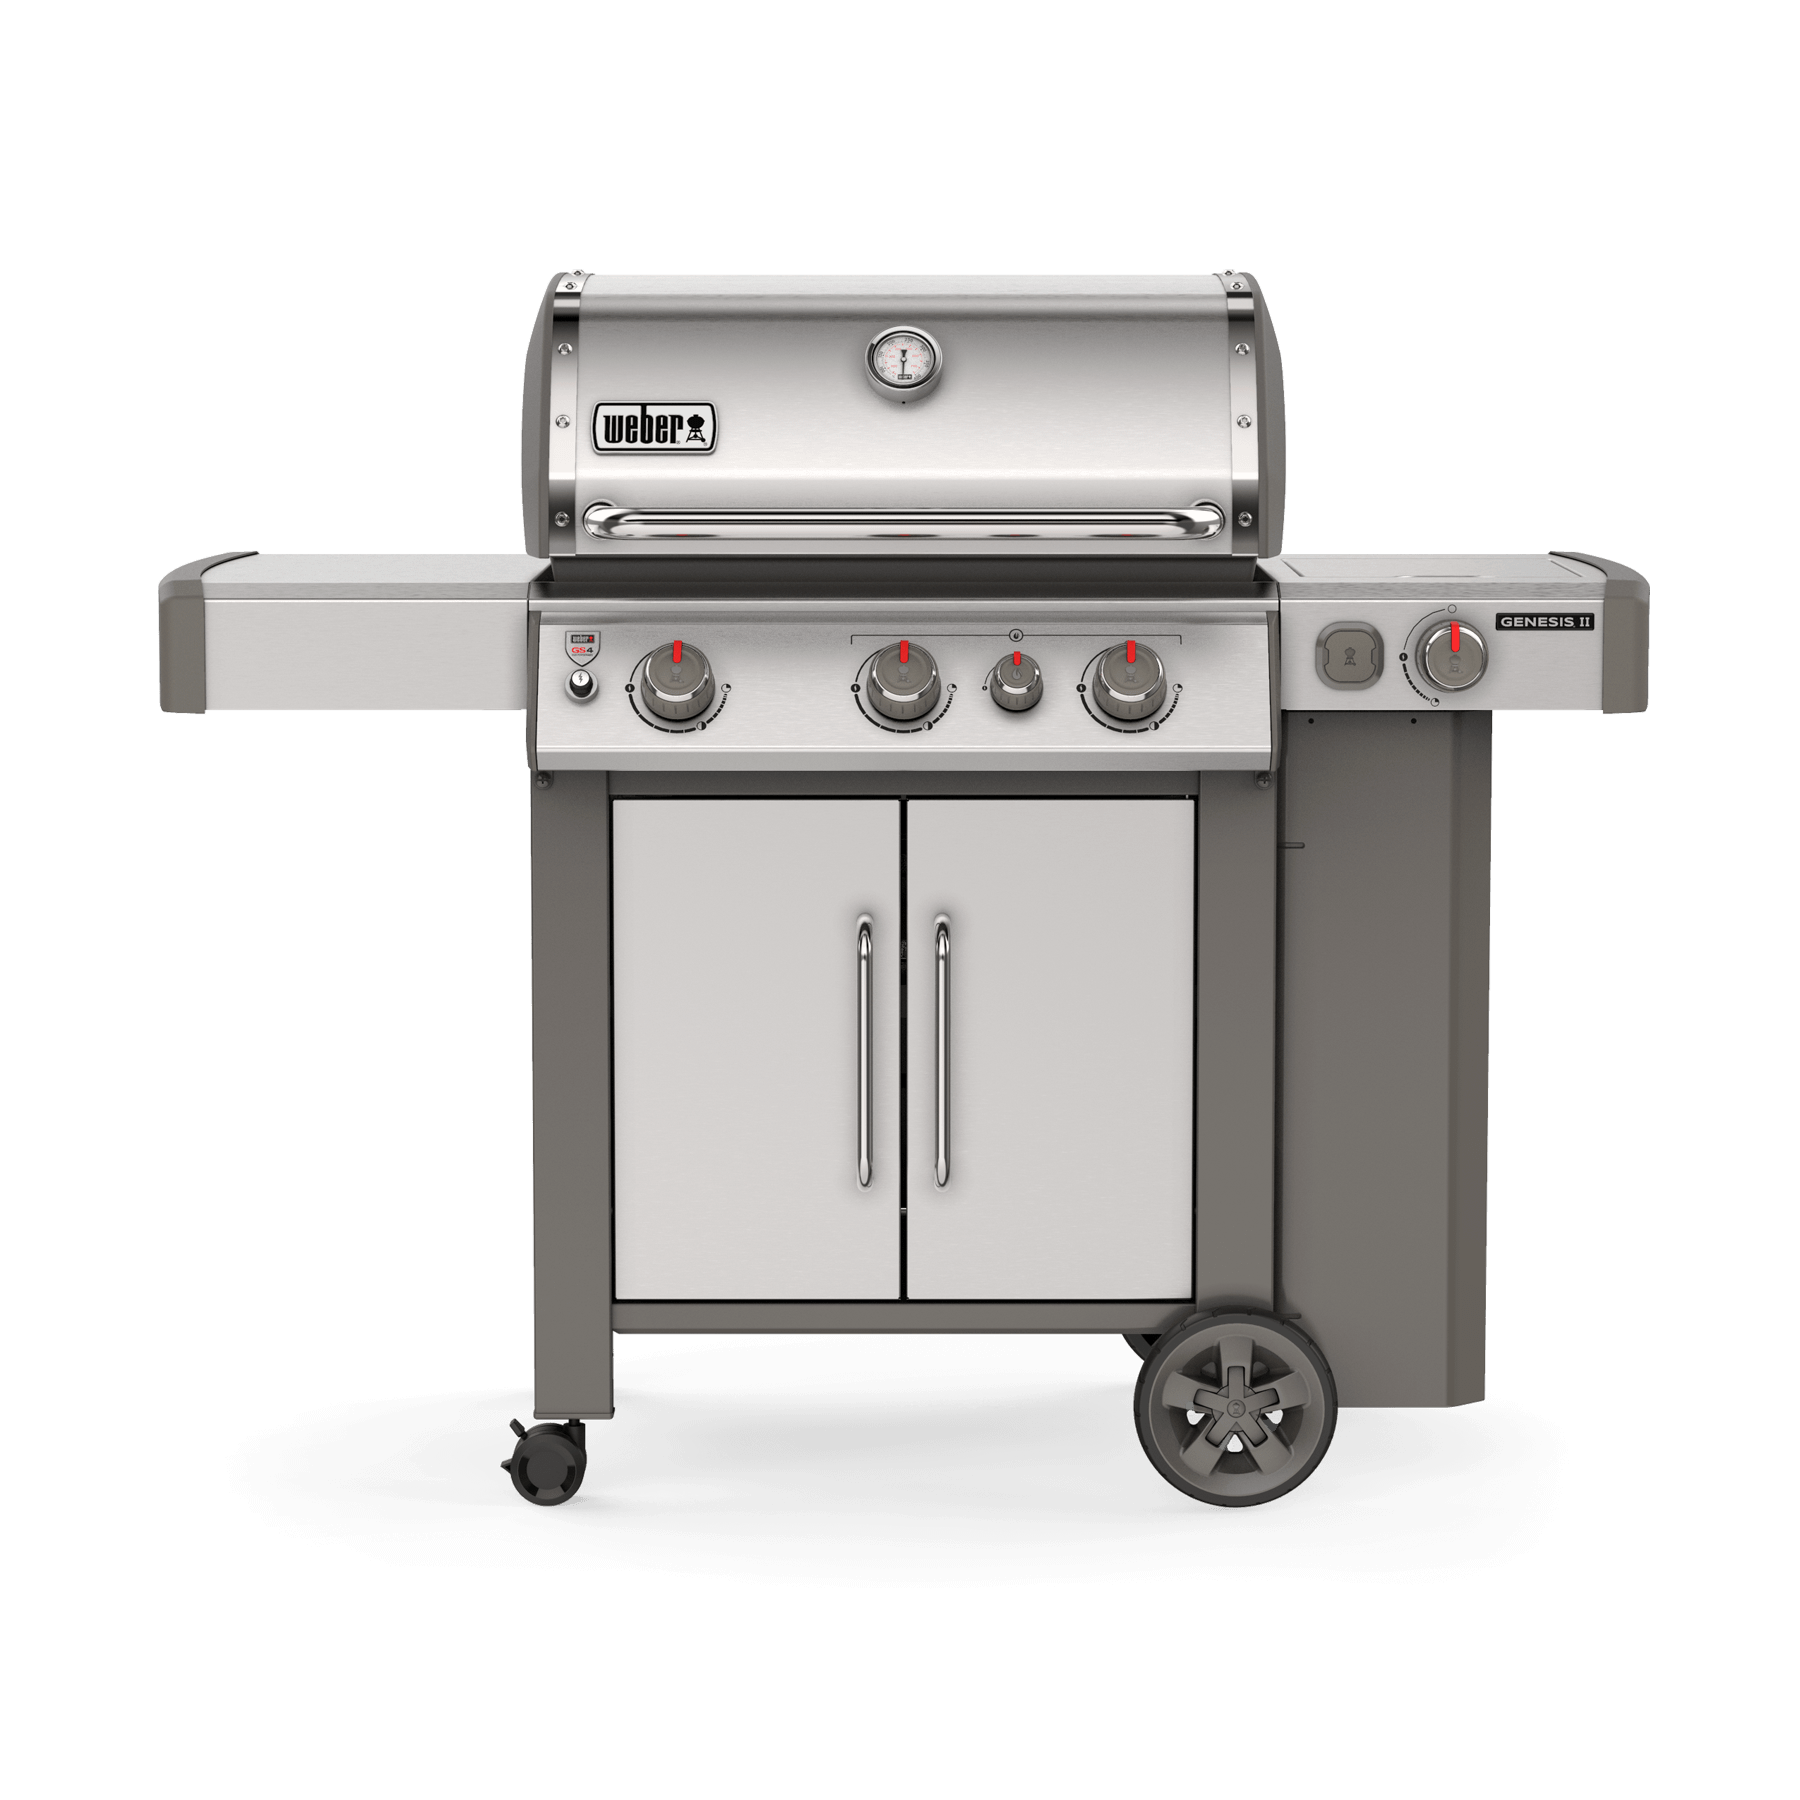 Genesis® II SP-335 GBS Gas Barbecue